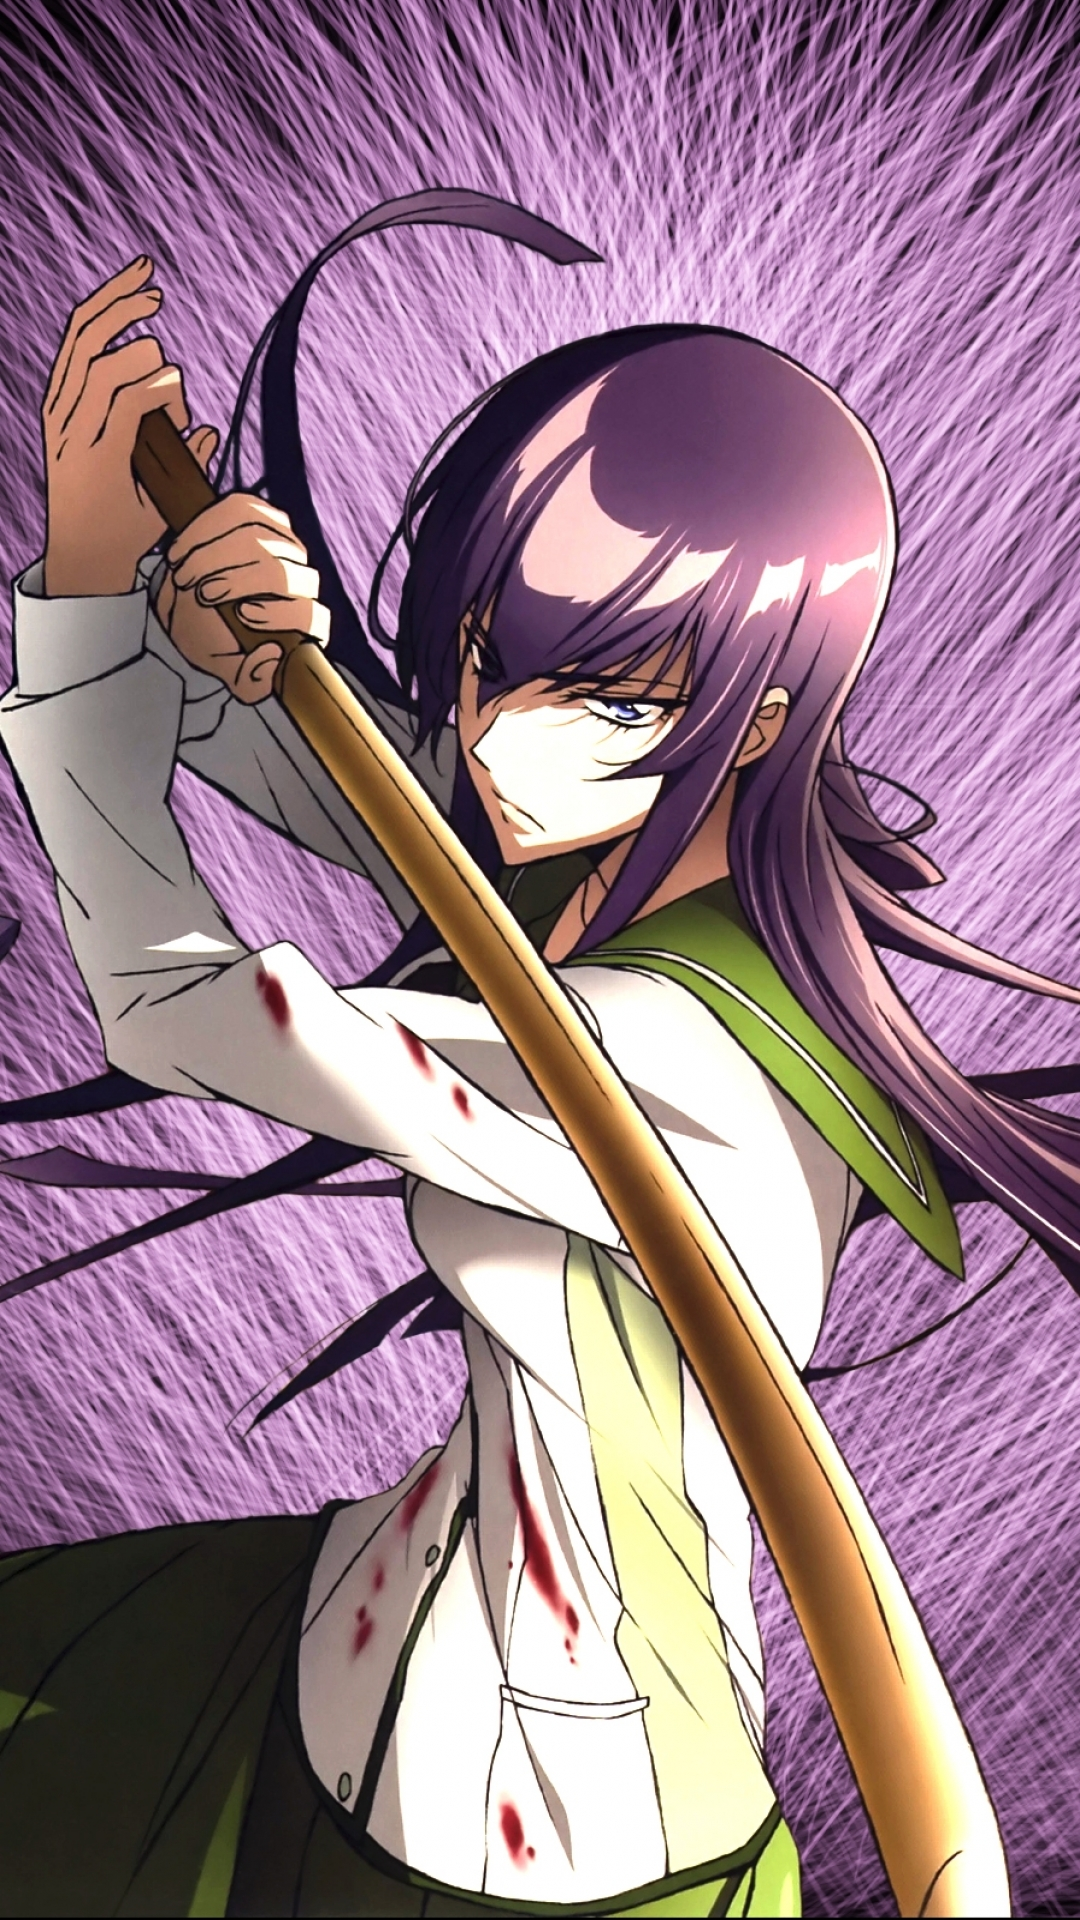 Anime Highschool Of The Dead 1080x1920 Mobile Wallpaper